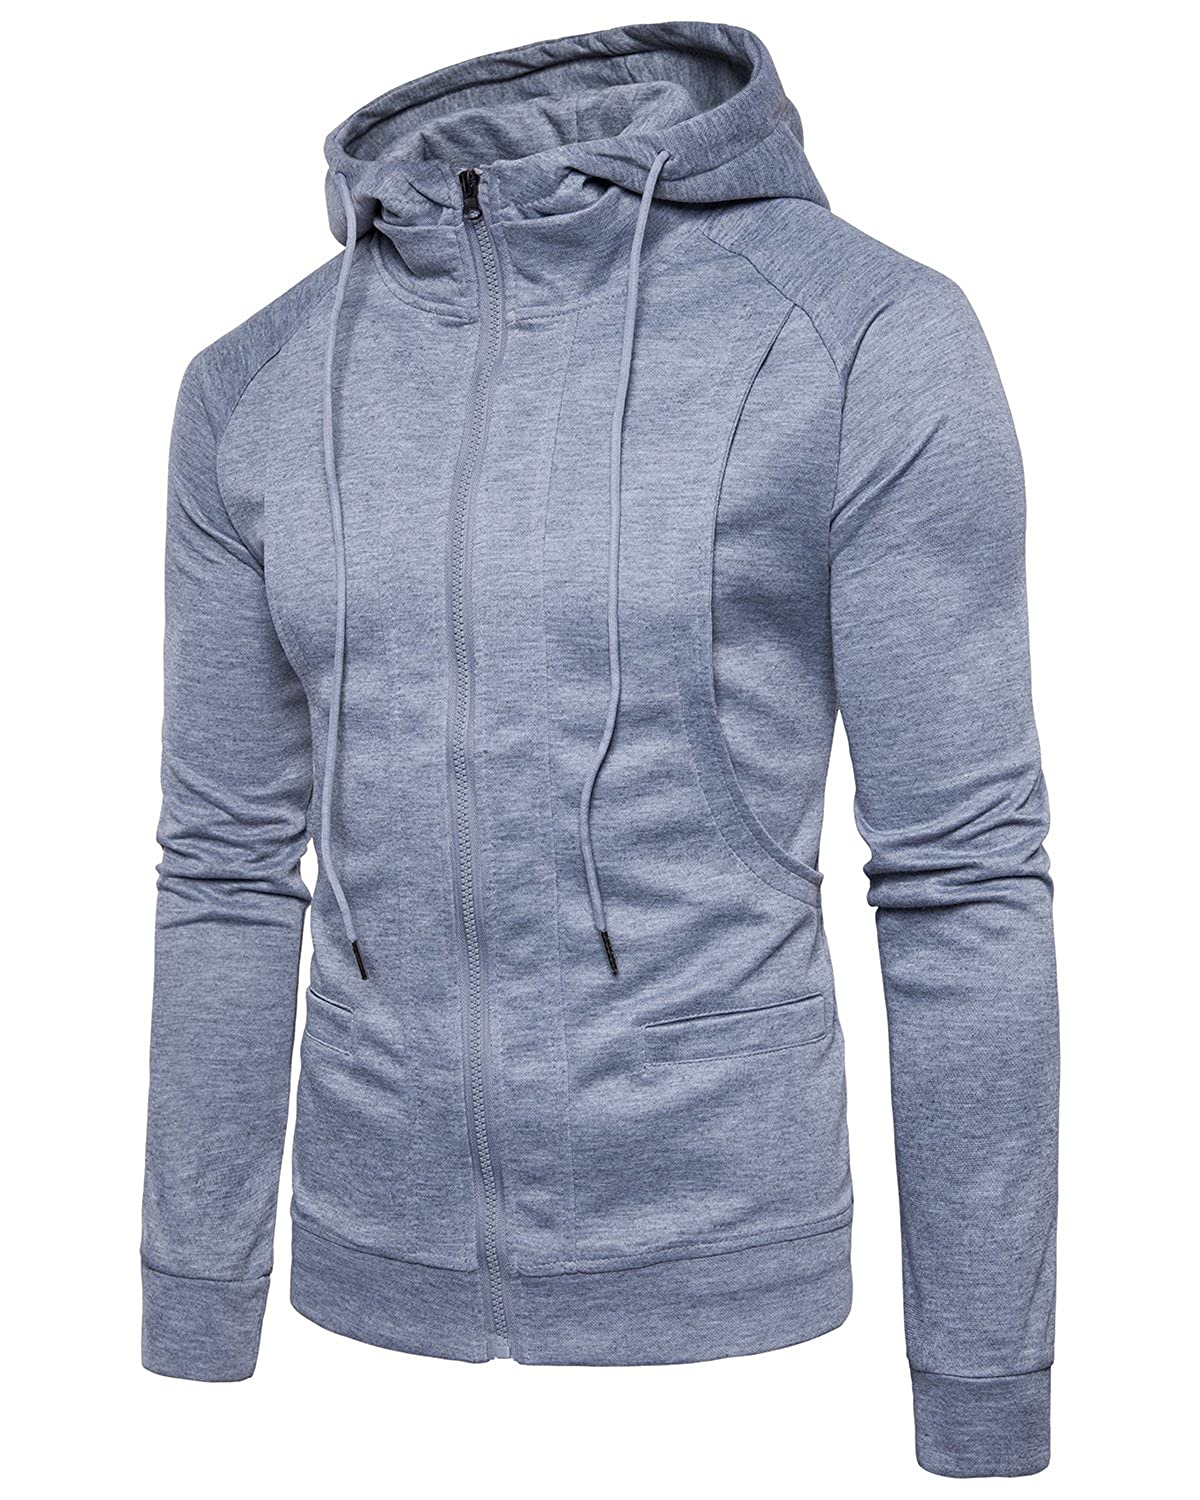 80dbb8162500 Top 10 wholesale 2 Tone Zip Hoodie - Chinabrands.com